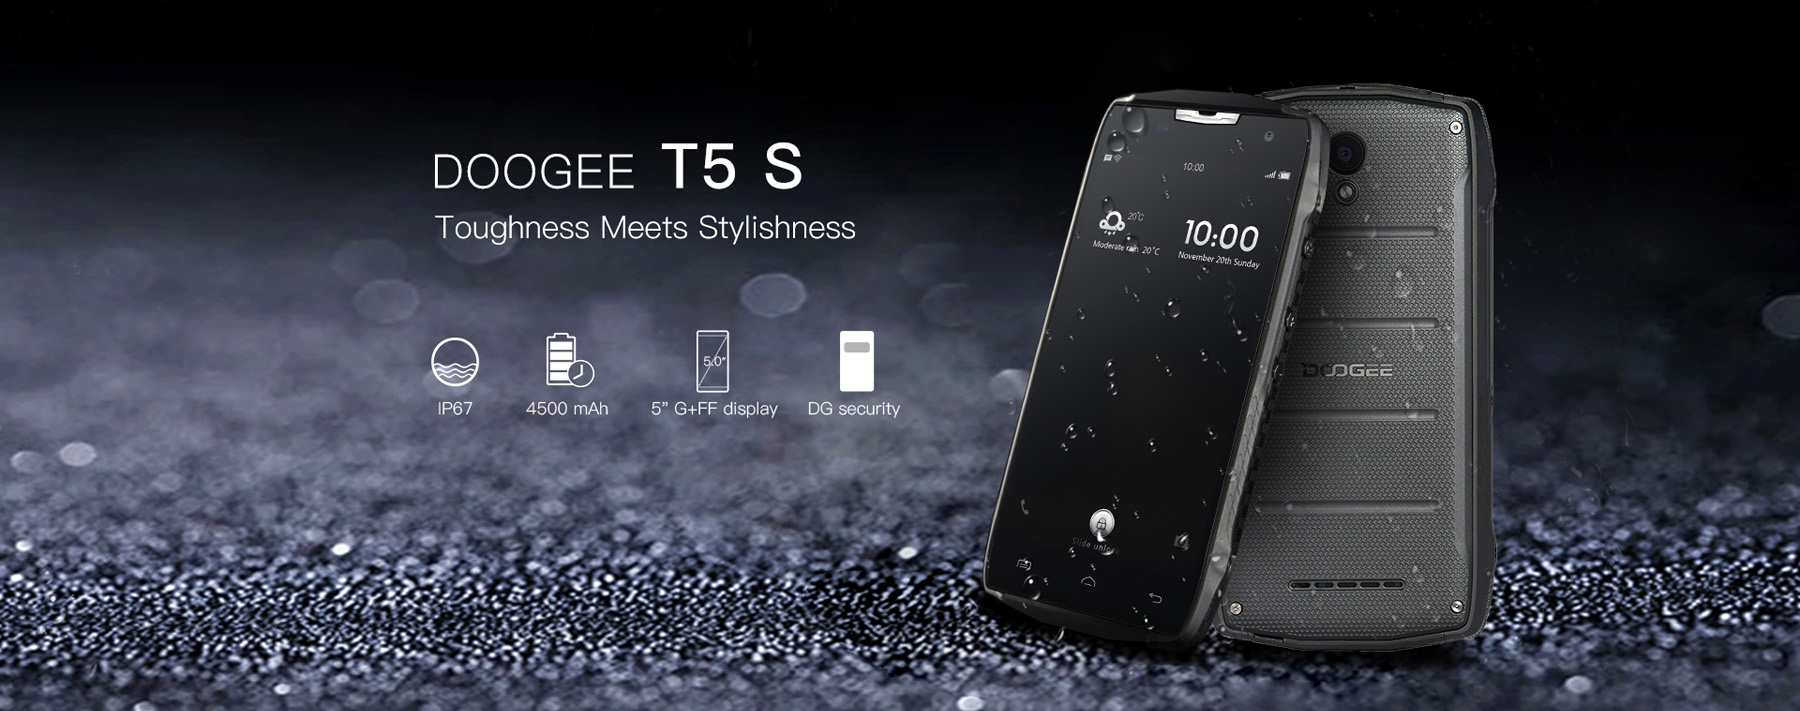 DOOGEE T5S Android 6.0 5.0 inch 4G Smartphone MTK6735 Quad Core 1.0GHz 2GB RAM 16GB ROM Bluetooth 4.0